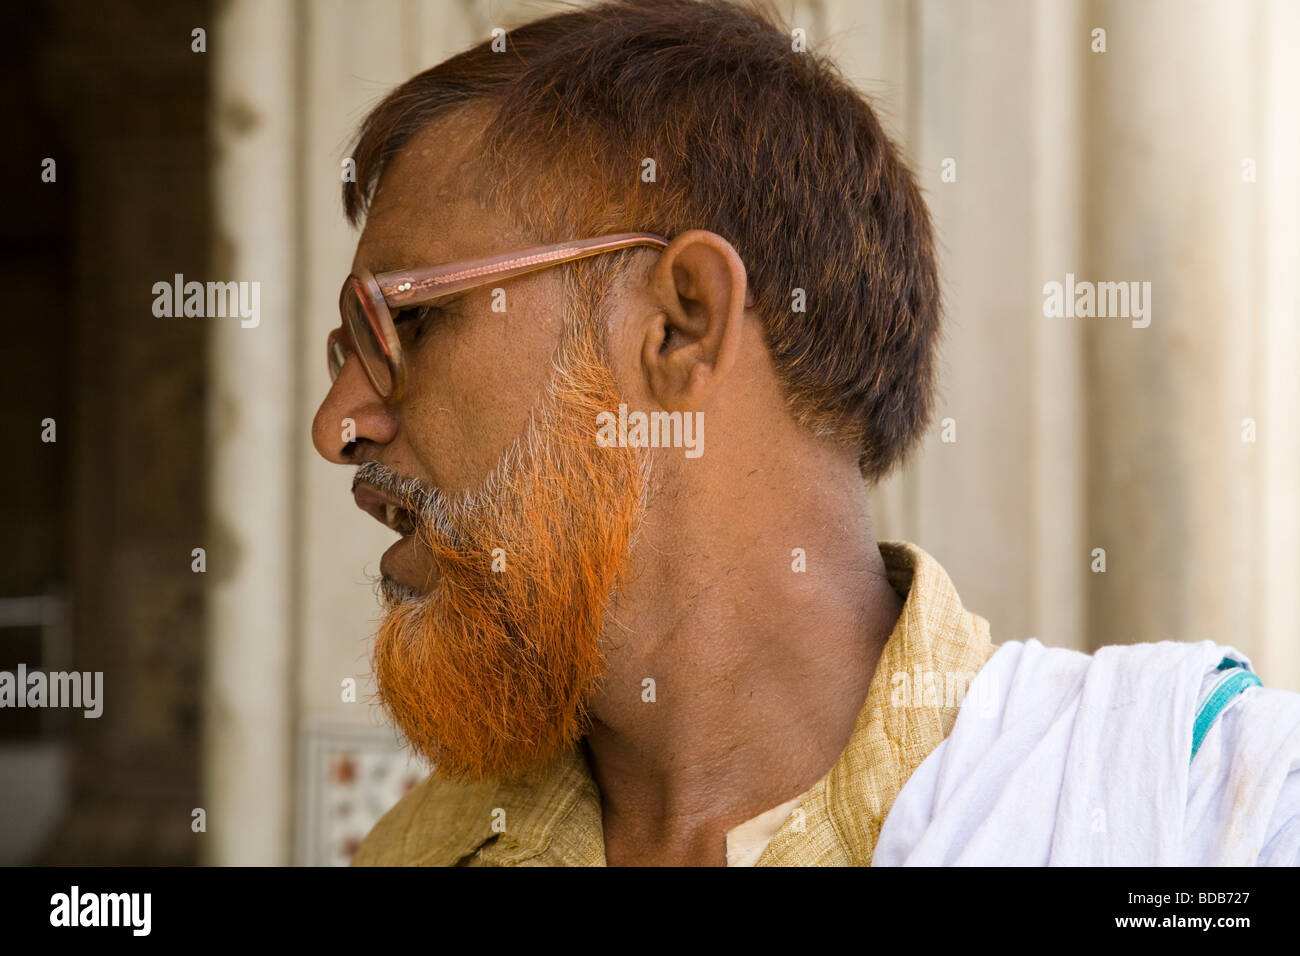 An Indian Man With His Beard Dyed With Henna Colour Inside The Red